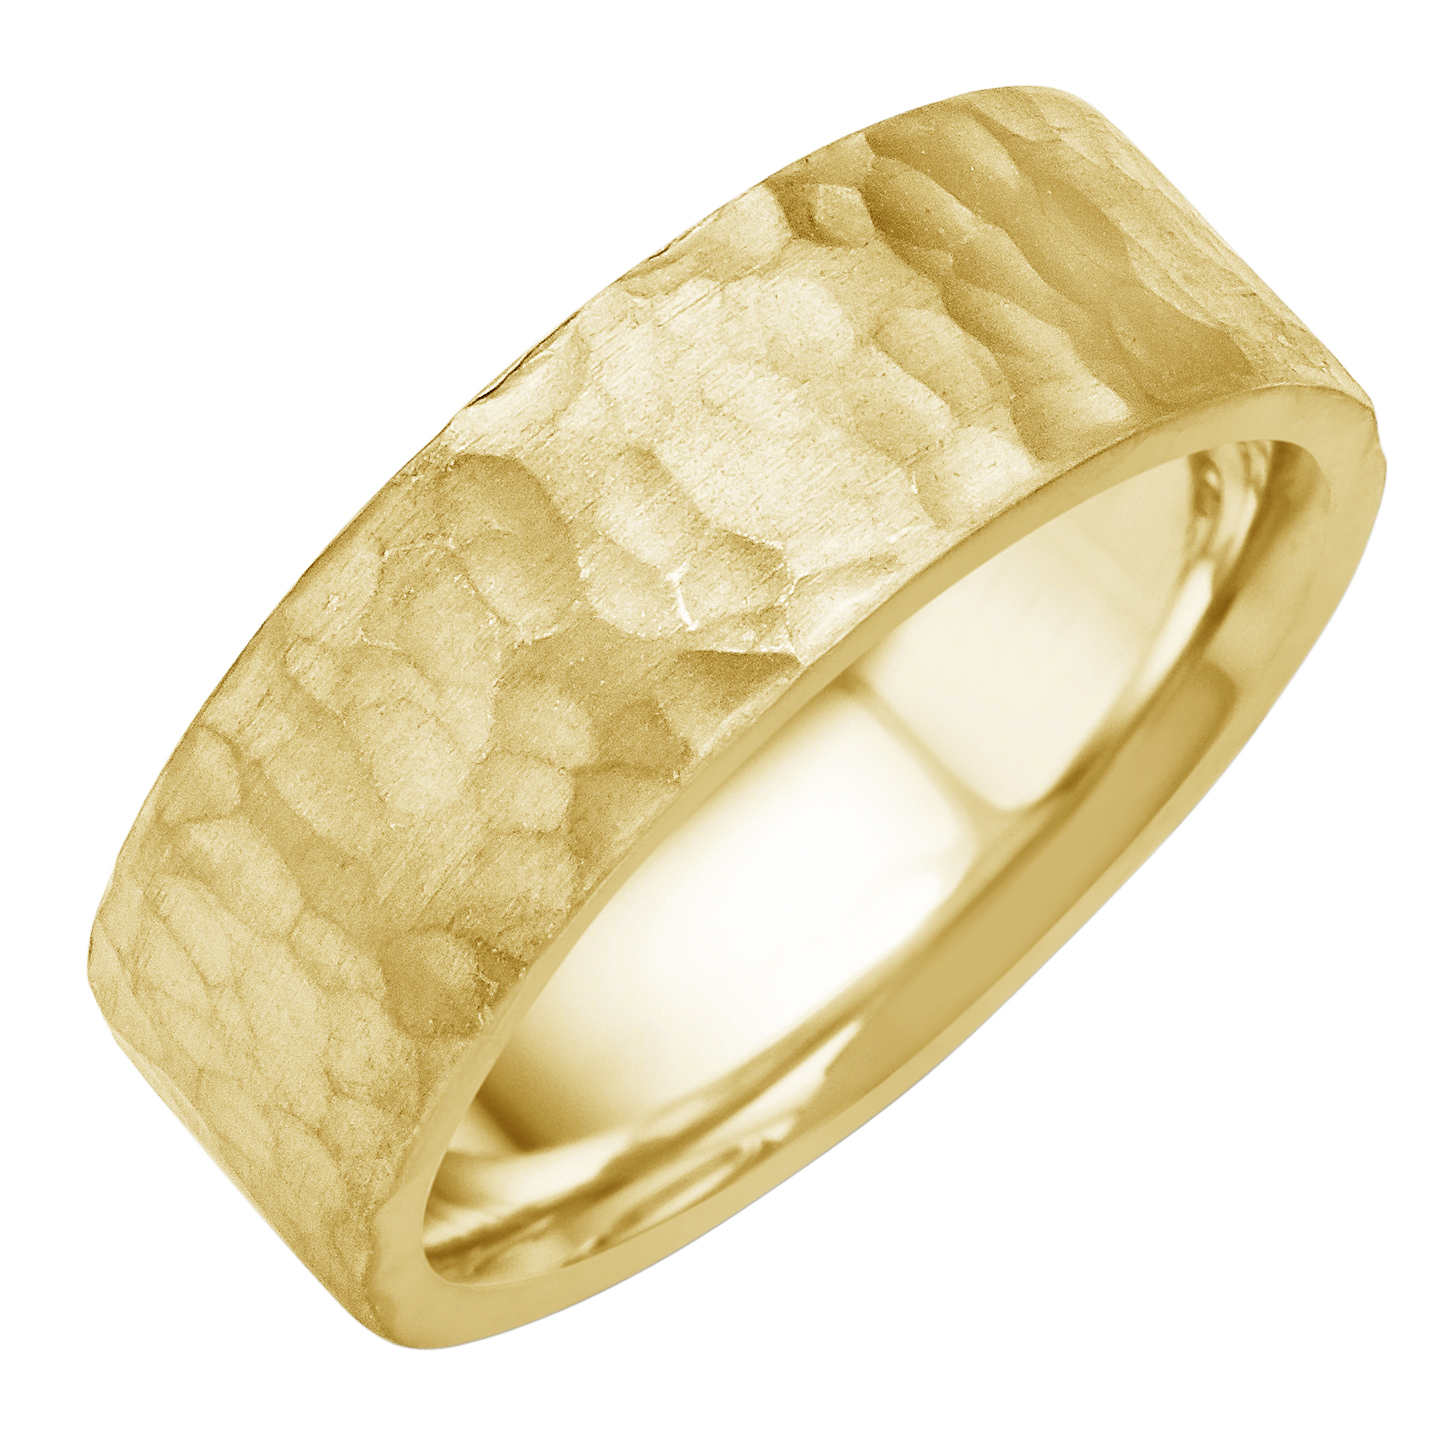 Hammered Finish Bands: 14K-18K White Or Yellow Gold Hammered Finish Mens Wedding